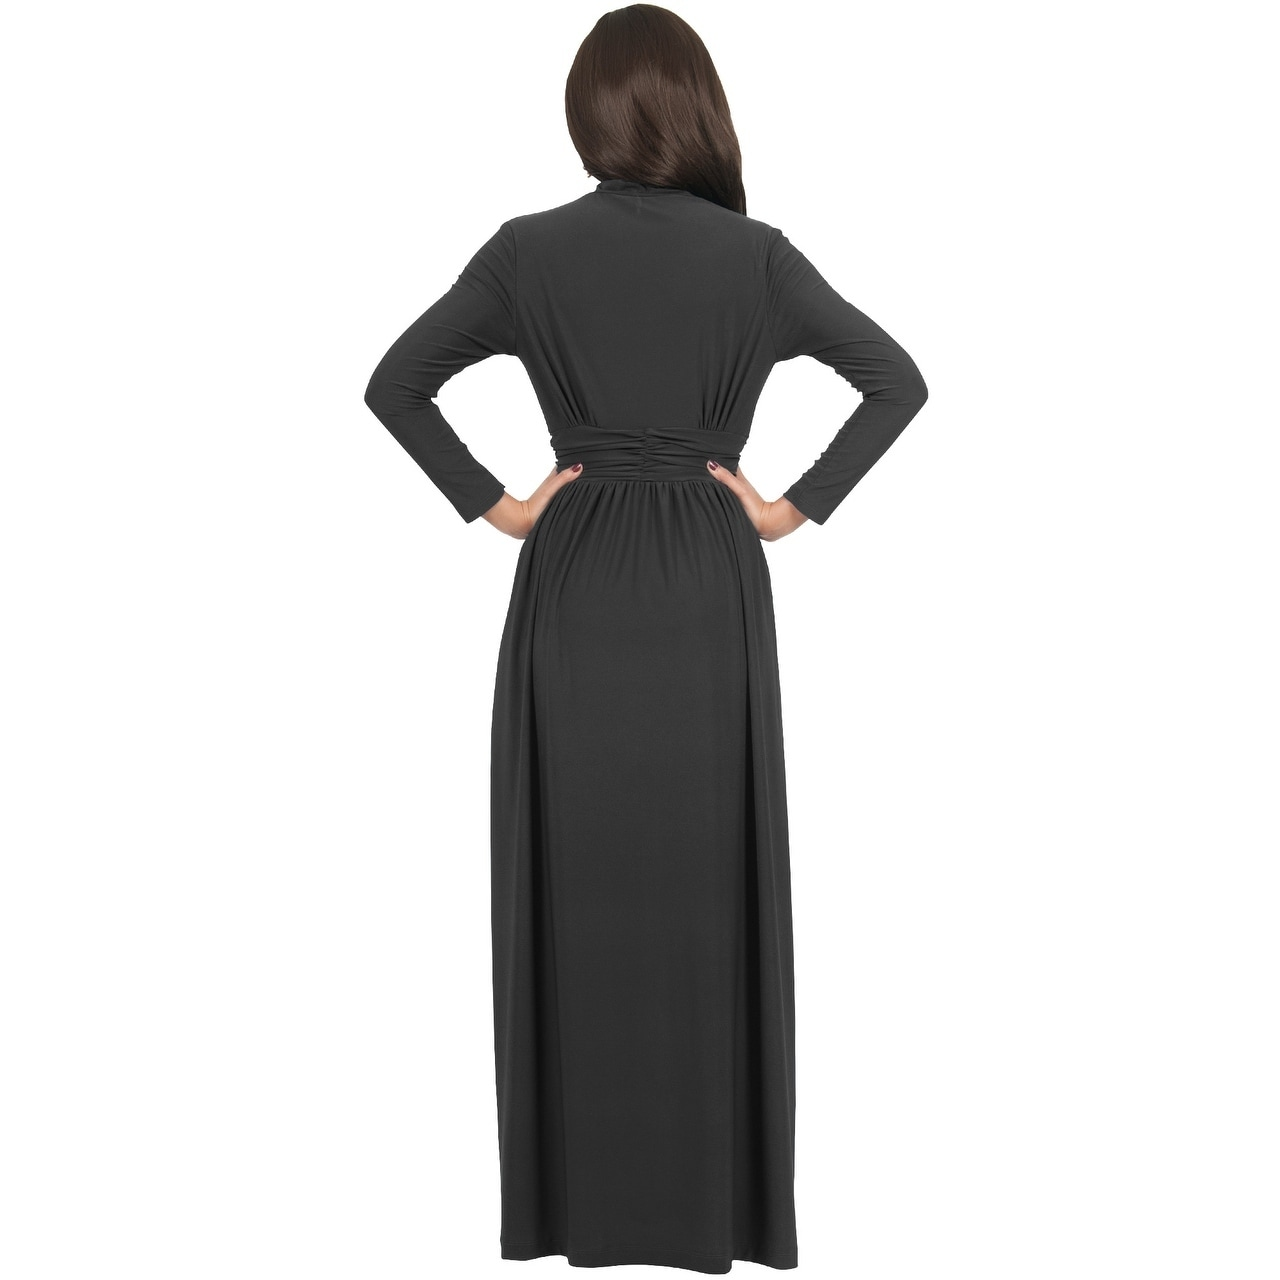 6ea8e7c42598ba Shop KOH KOH Women s Vintage Inspired V-neck Long Sleeve Maxi Dress - Free  Shipping Today - Overstock - 10835718